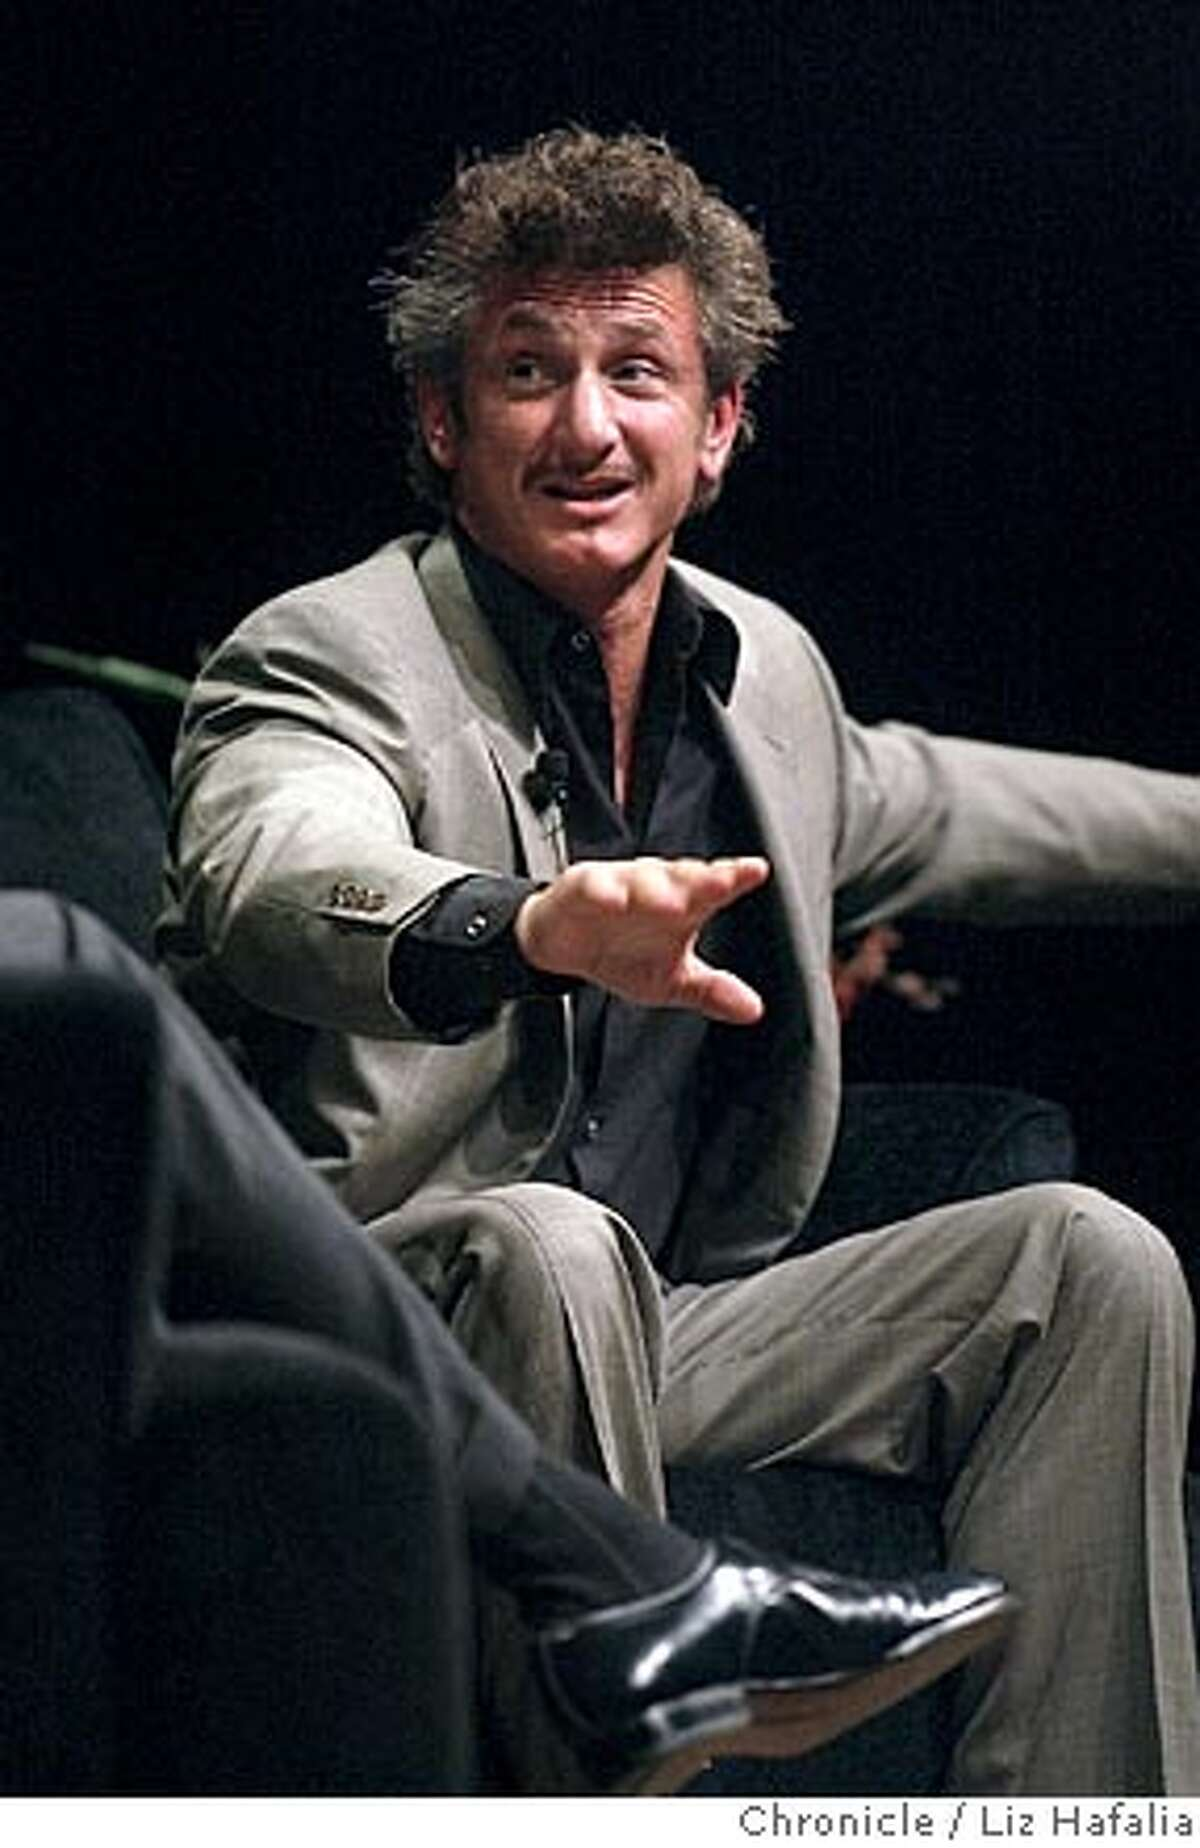 PENN_082_LH.JPG An evening with Sean Penn at the Palace of Fine Arts. Shot on 9/10/04 in San Francisco. LIZ HAFALIA / The Chronicle Ran on: 09-13-2004 The Boss, Bruce Springsteen, embraces his friend Sean Penn after presenting the actor with the Steinbeck Award, given annually by the Center for Steinbeck Studies. MANDATORY CREDIT FOR PHOTOG AND SF CHRONICLE/ -MAGS OUT